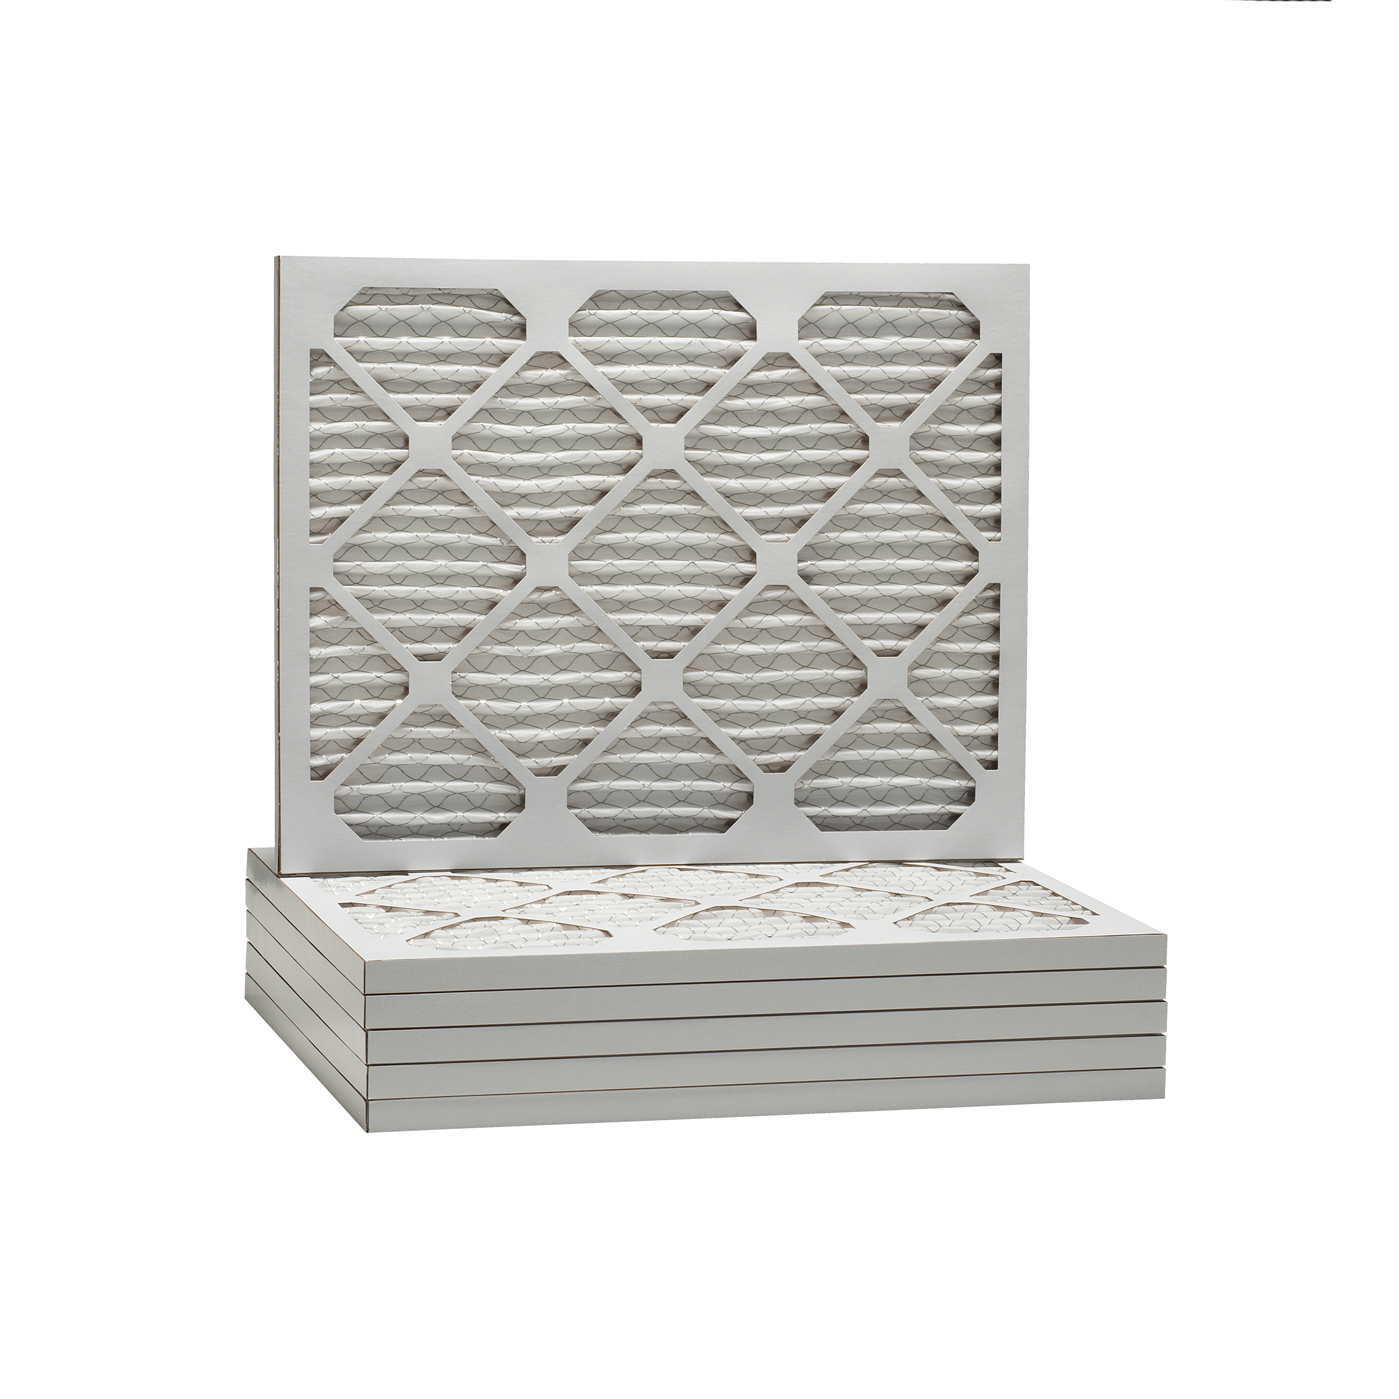 16-1 4x21-1 2x1 Dust & Pollen Merv 8 Pleated Replacement AC Furnace Air Filter (6 Pack) by Tier1